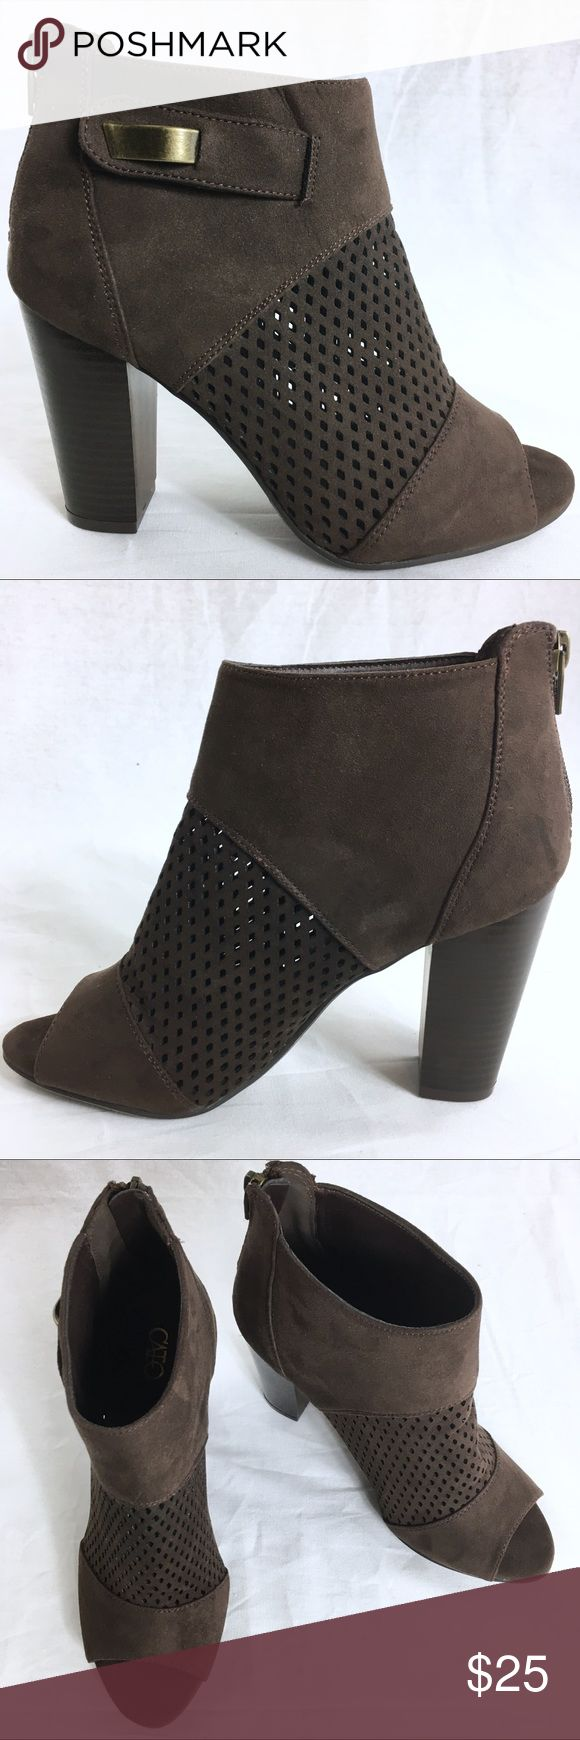 CATO Brown Suede Material Laser-Cut Shooties 7.5M These booties (shooters) are new without the box.  There are in GREAT condition.  The heel measures 4 inches. Cato Shoes Ankle Boots & Booties